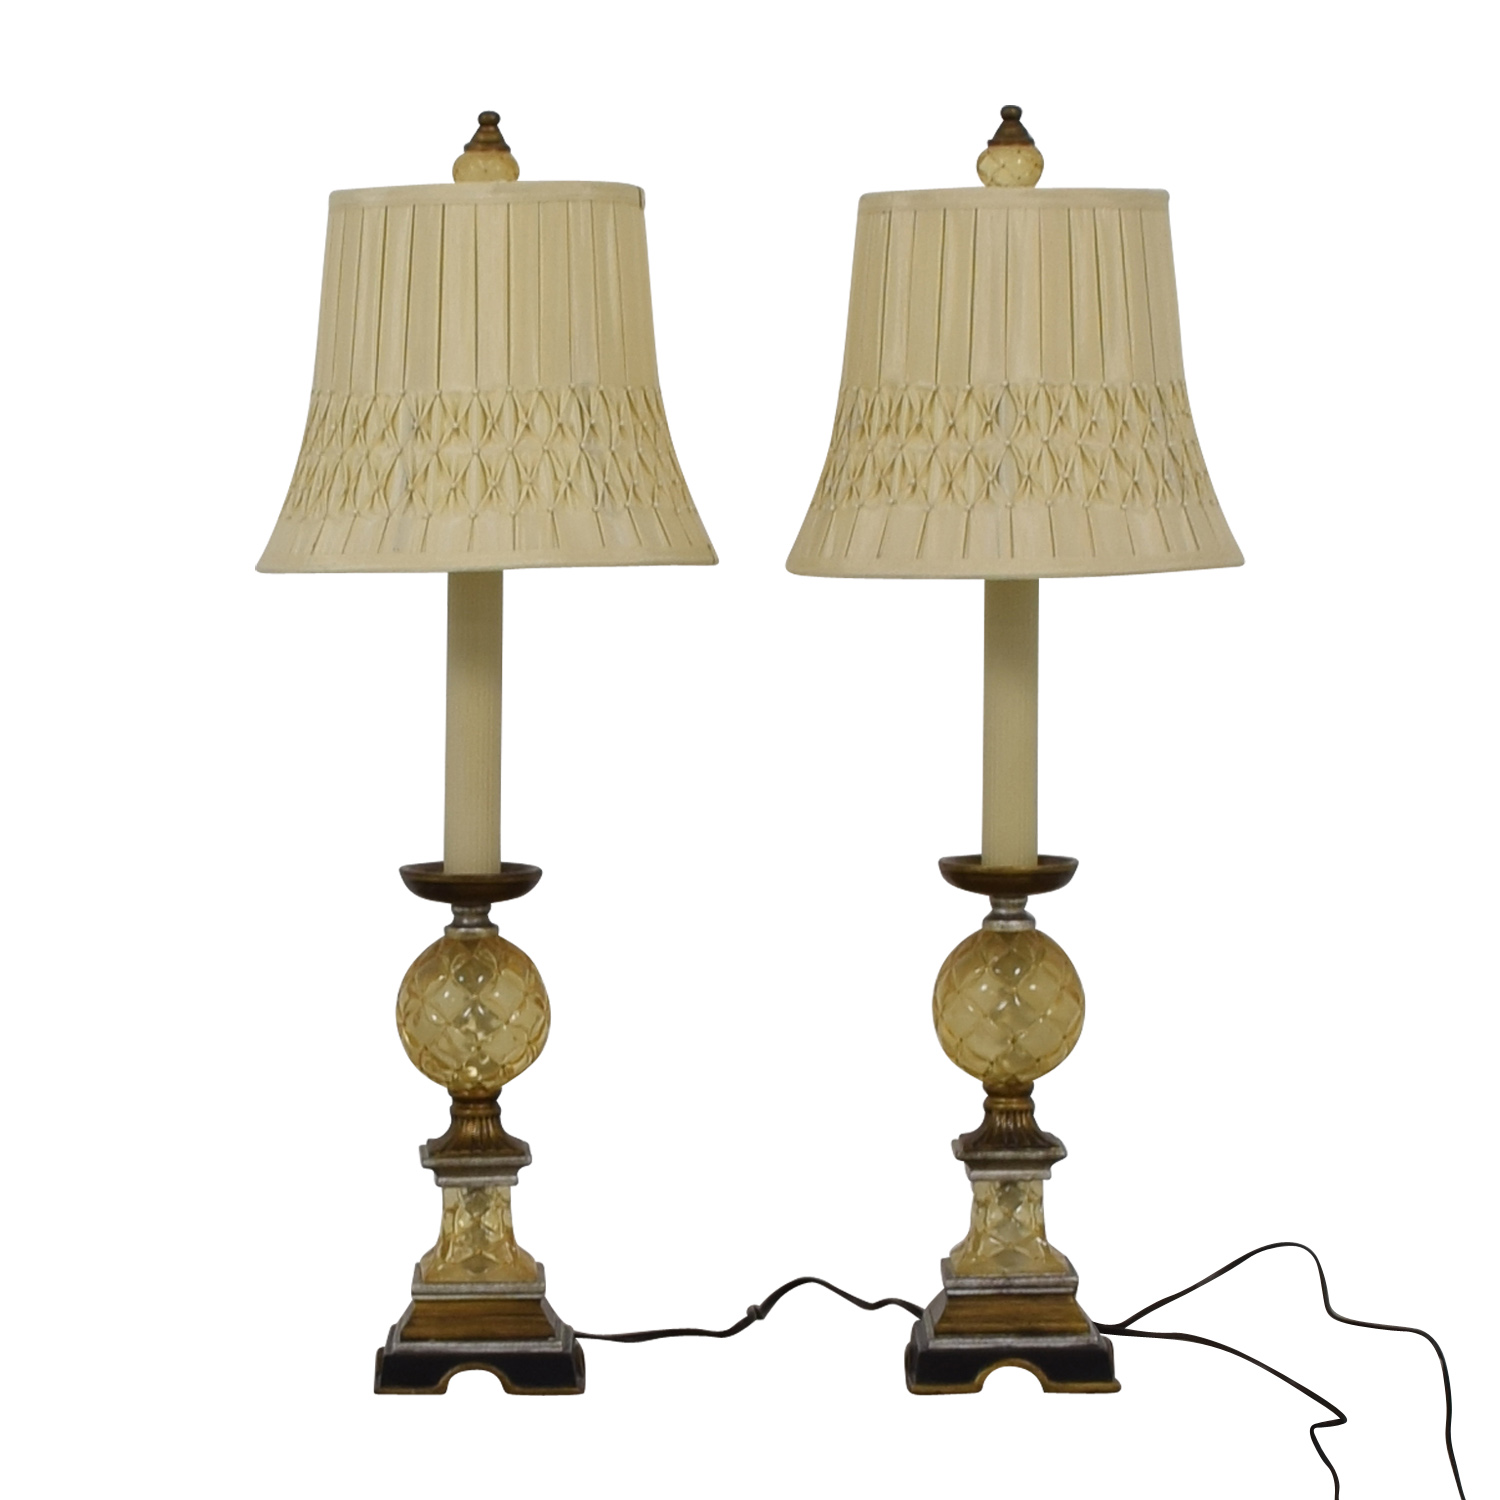 Glass Ball Table Lamps nj